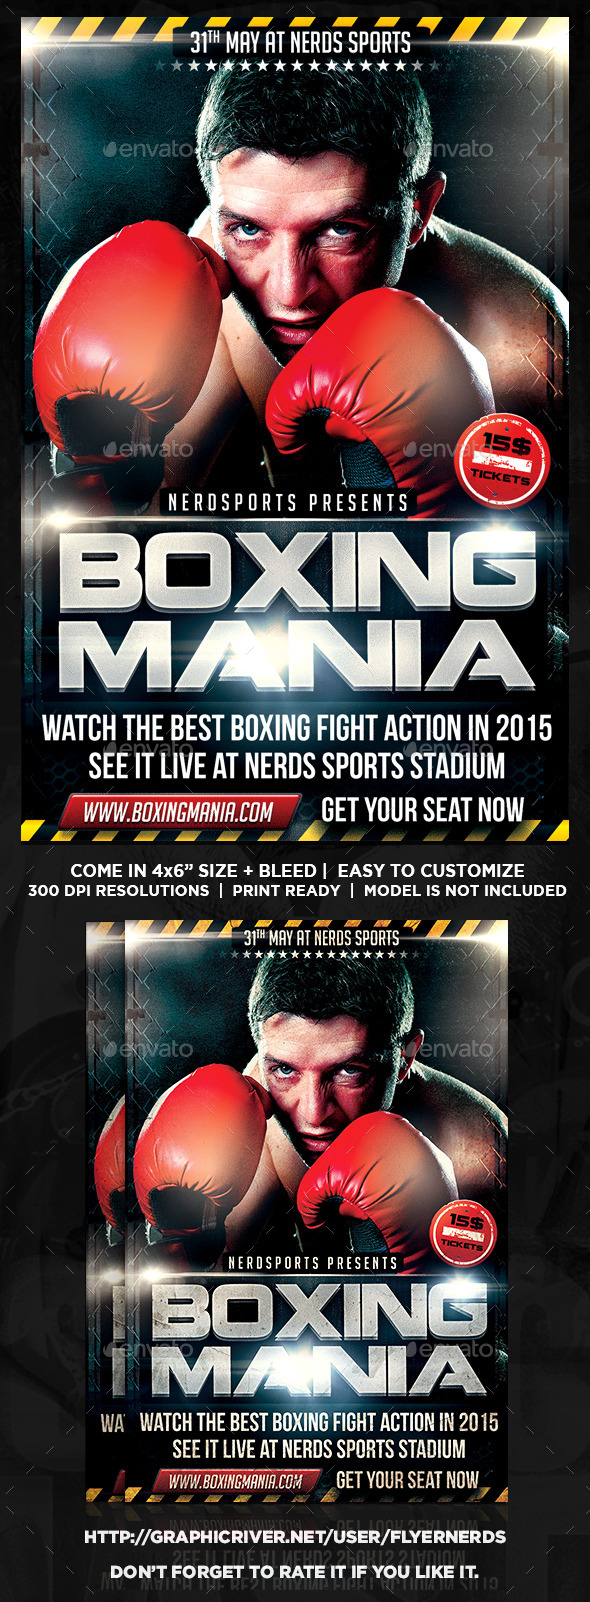 GraphicRiver Boxing Mania Sports Flyer 11020781